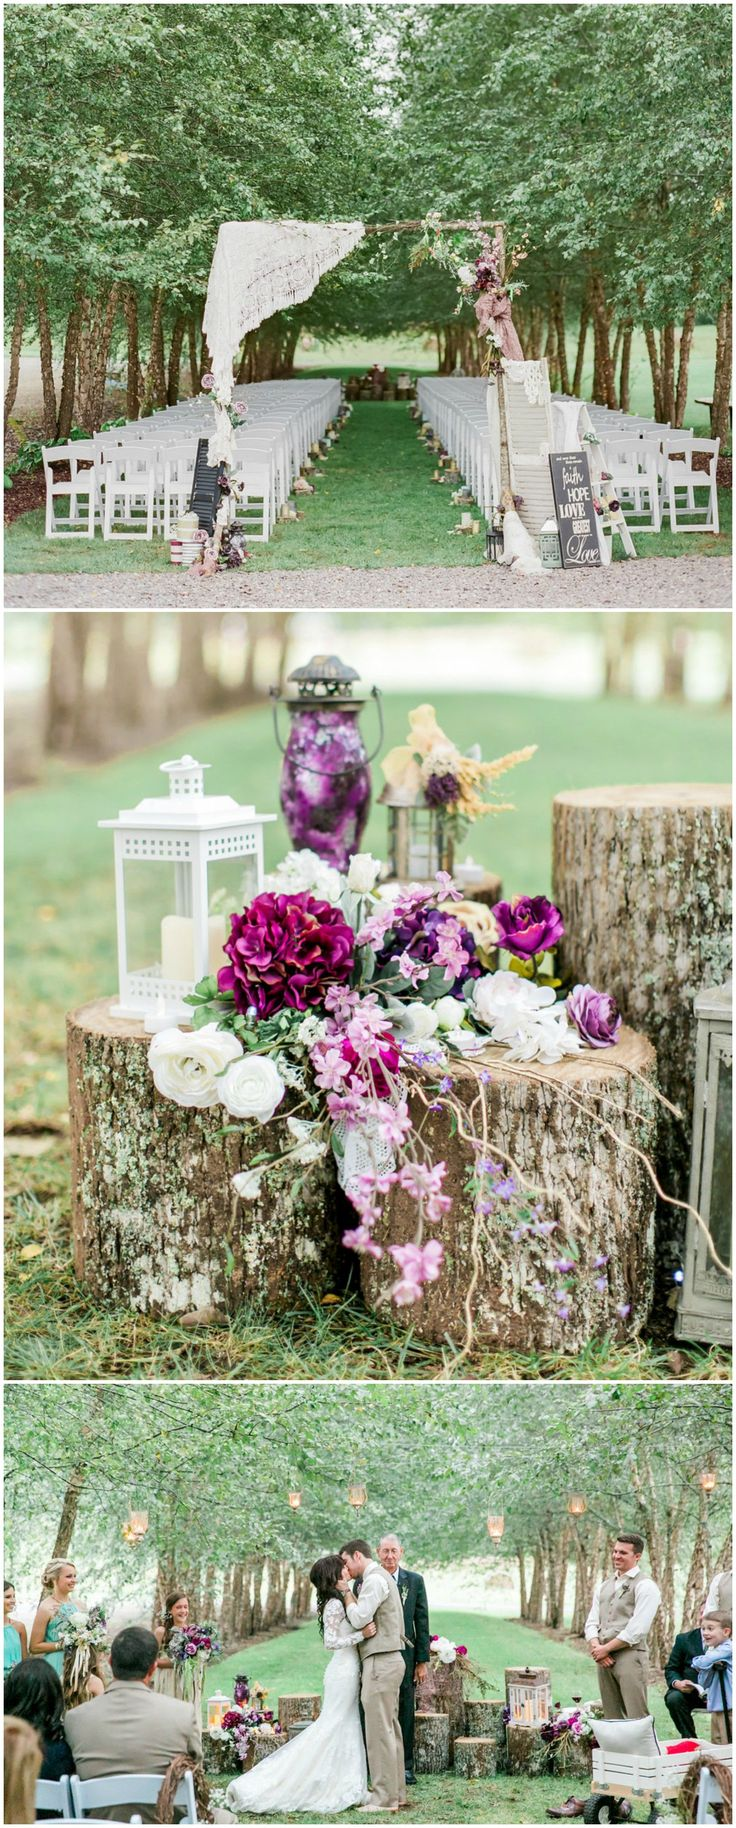 we would like to invite you celebrate our wedding in december0th%0A Rustic outdoor wedding ceremony  purple florals  tree stumps  white  lanterns  arbor draped